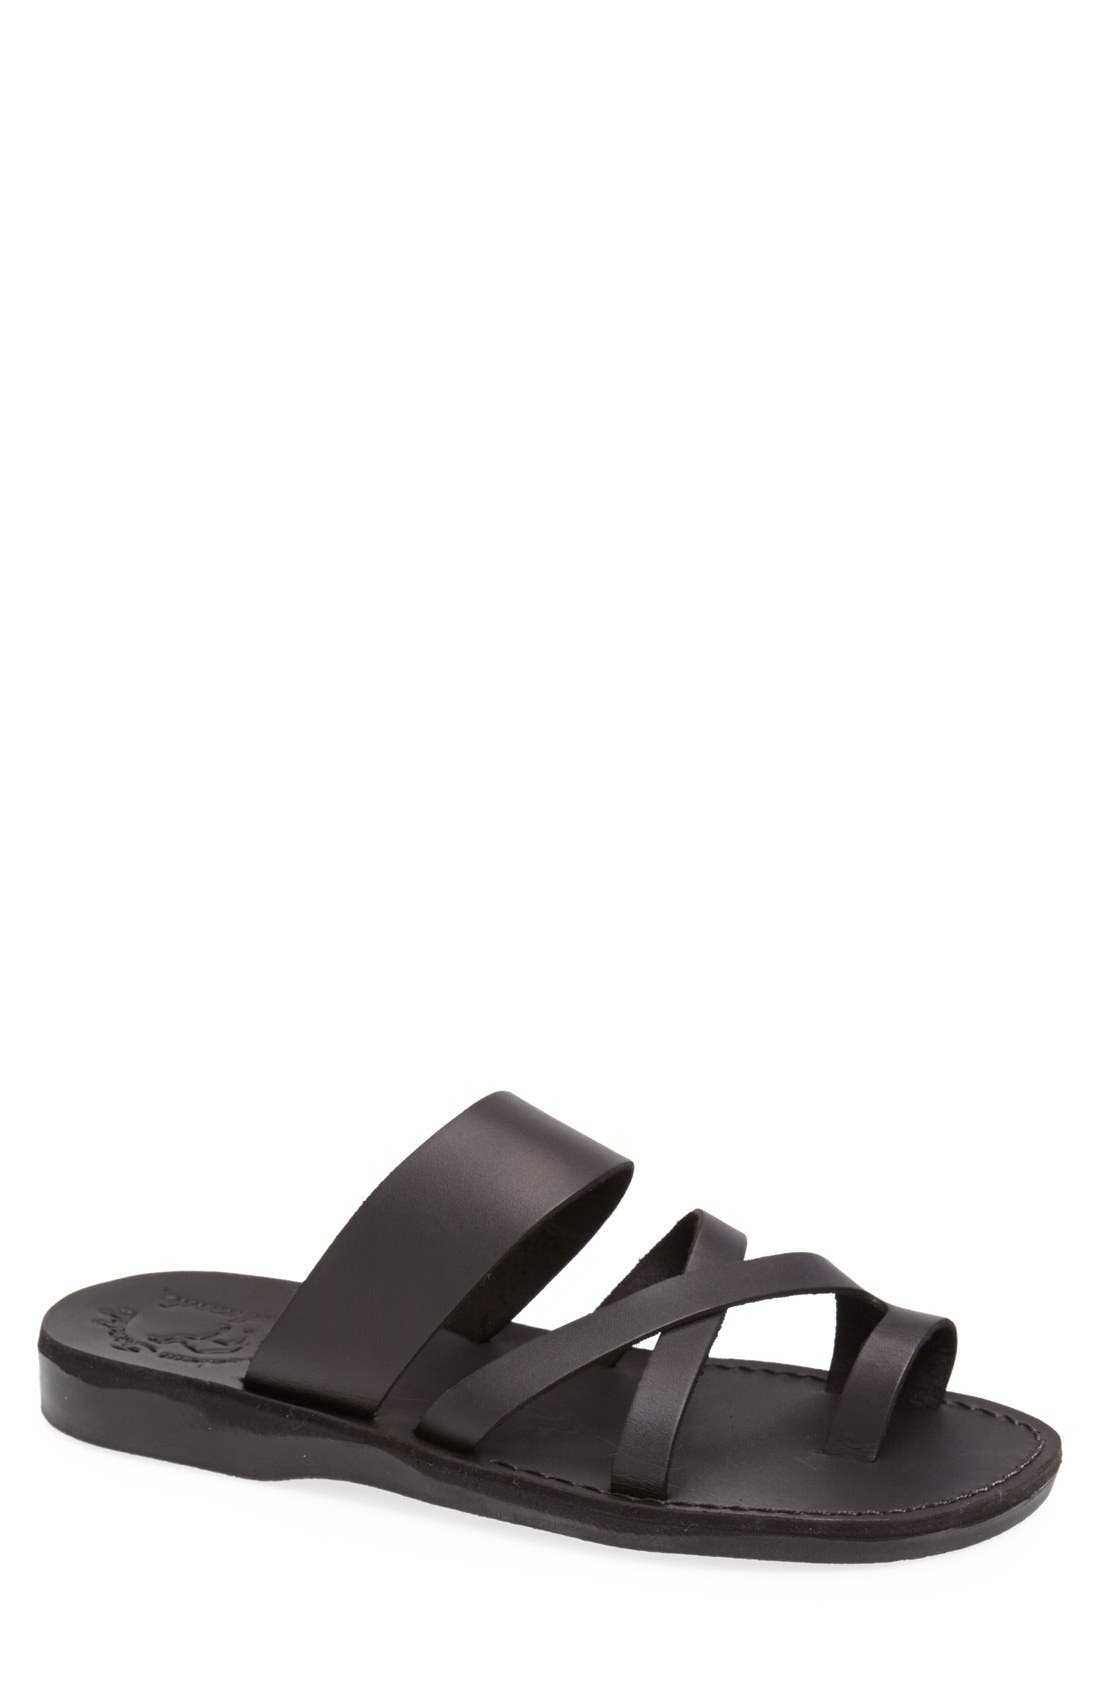 'The Good Shepherd' Leather Sandal,                             Main thumbnail 1, color,                             001